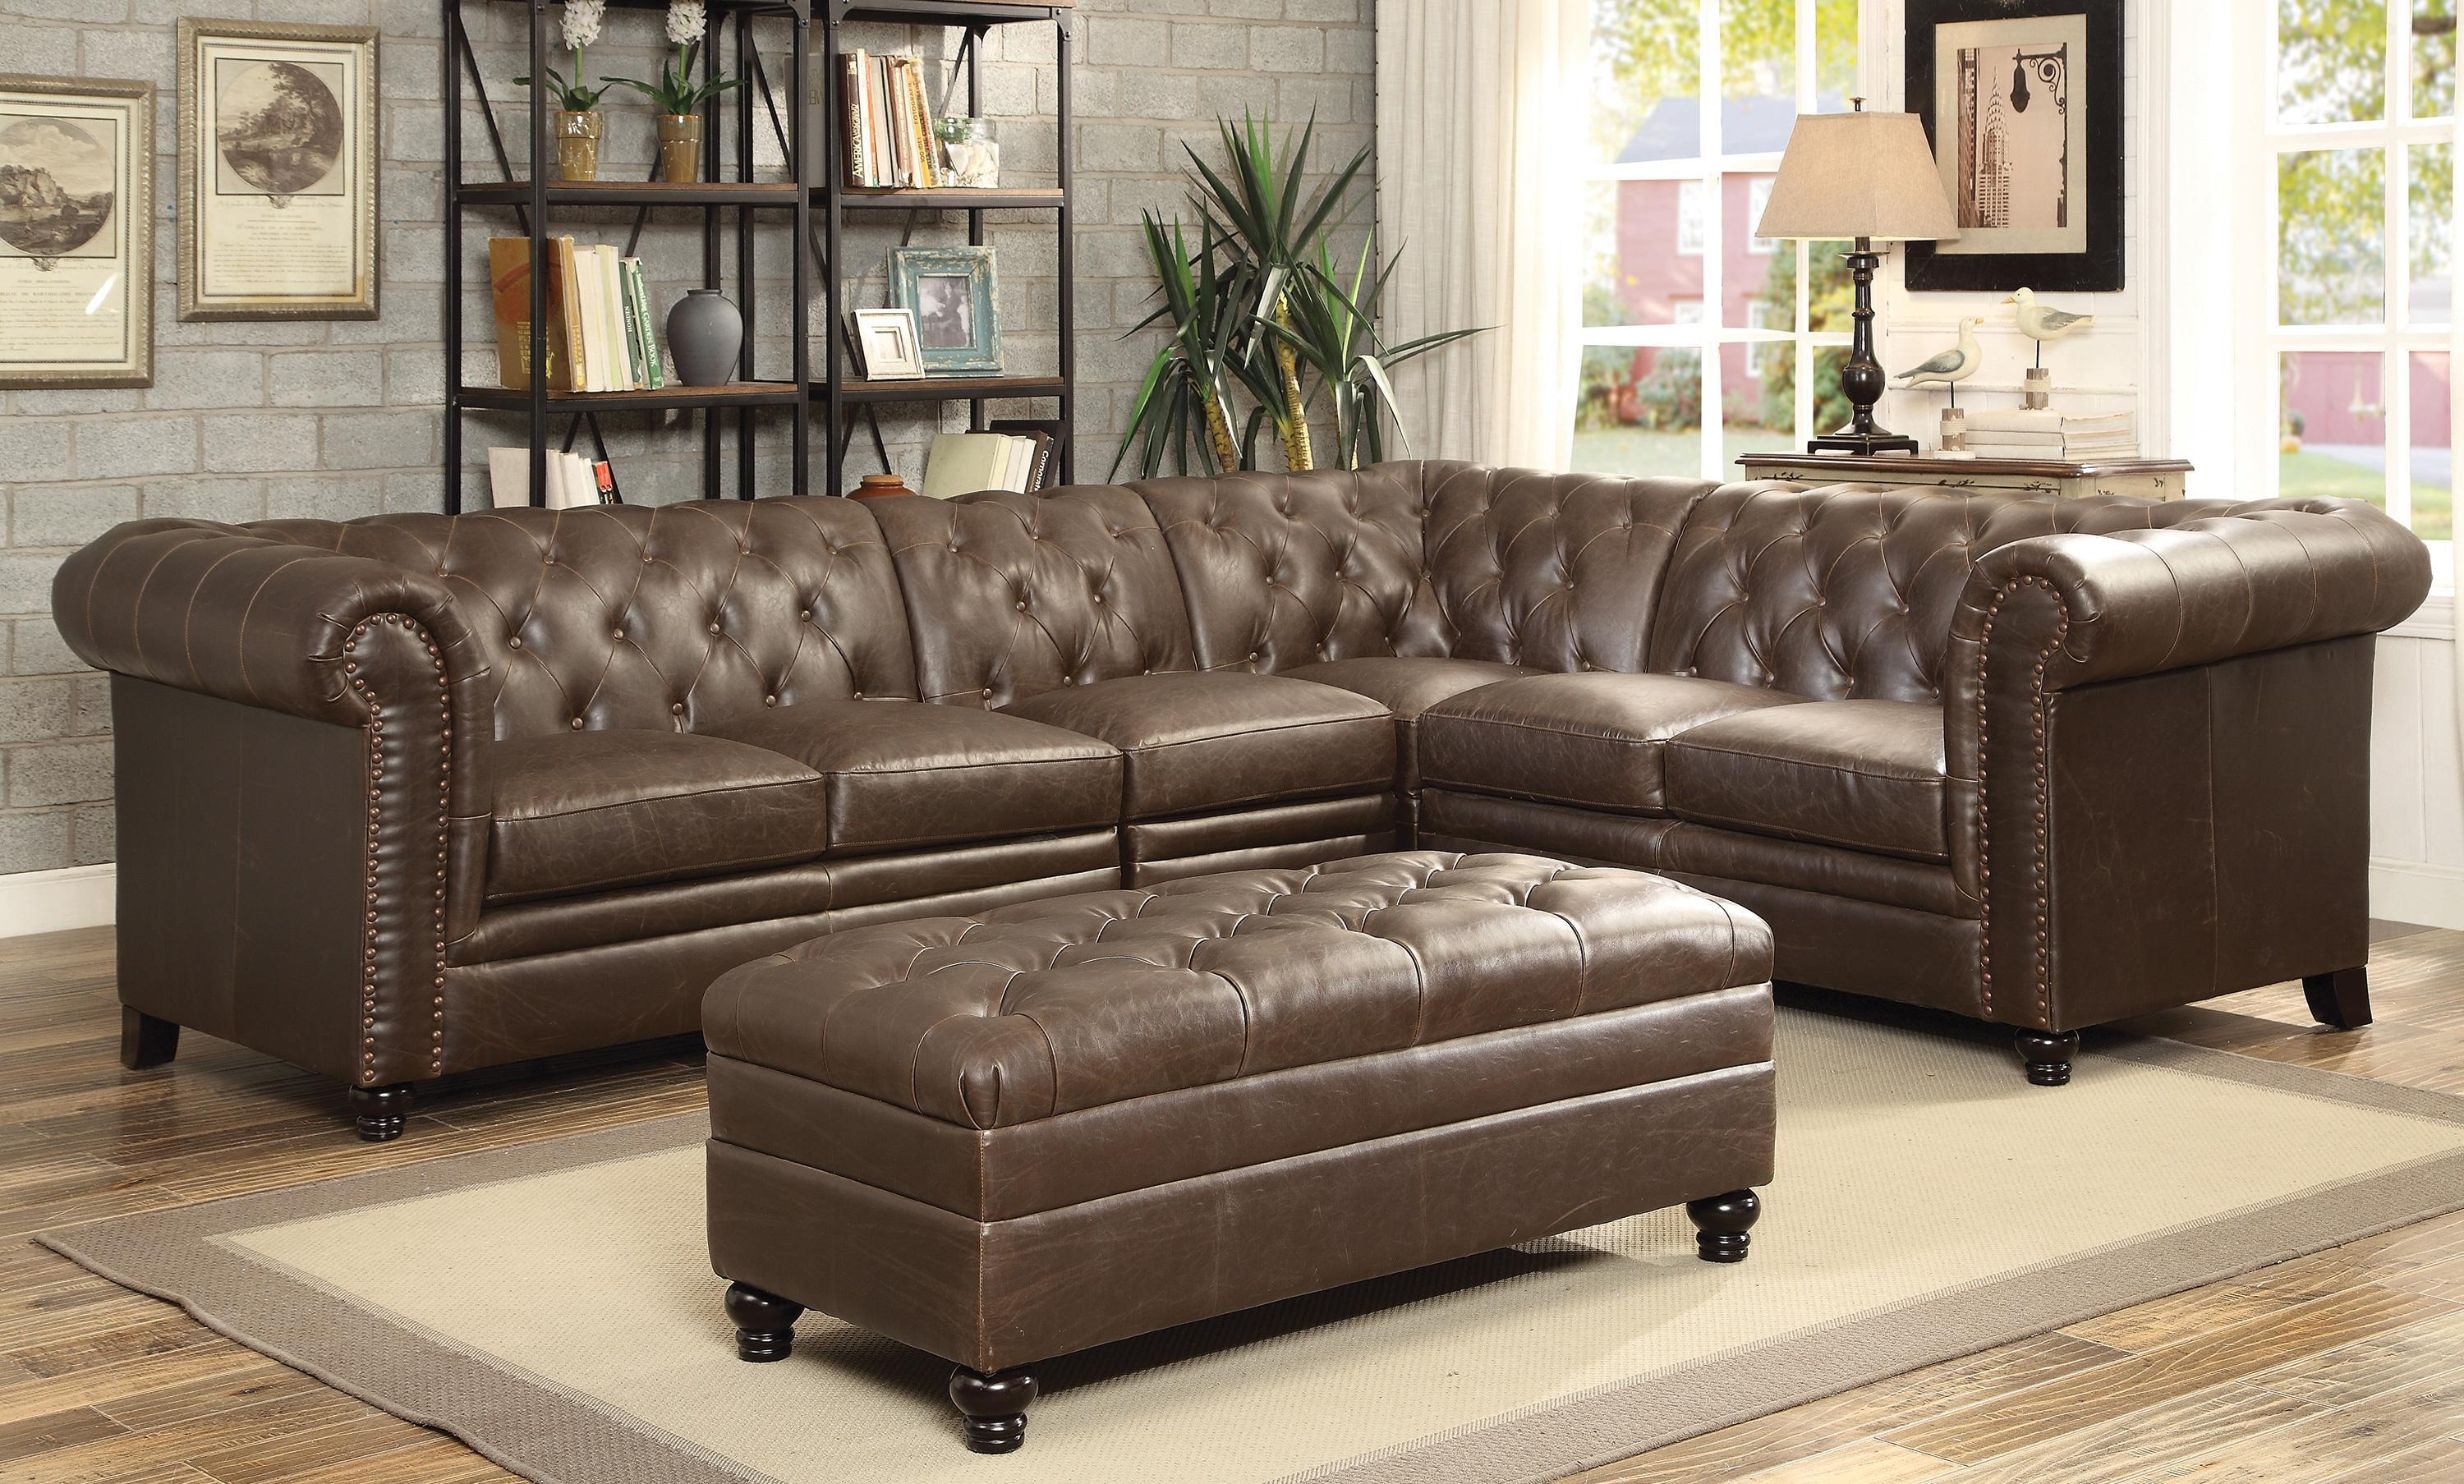 20 Best Ideas Traditional Sectional Sofas  Sofa Ideas